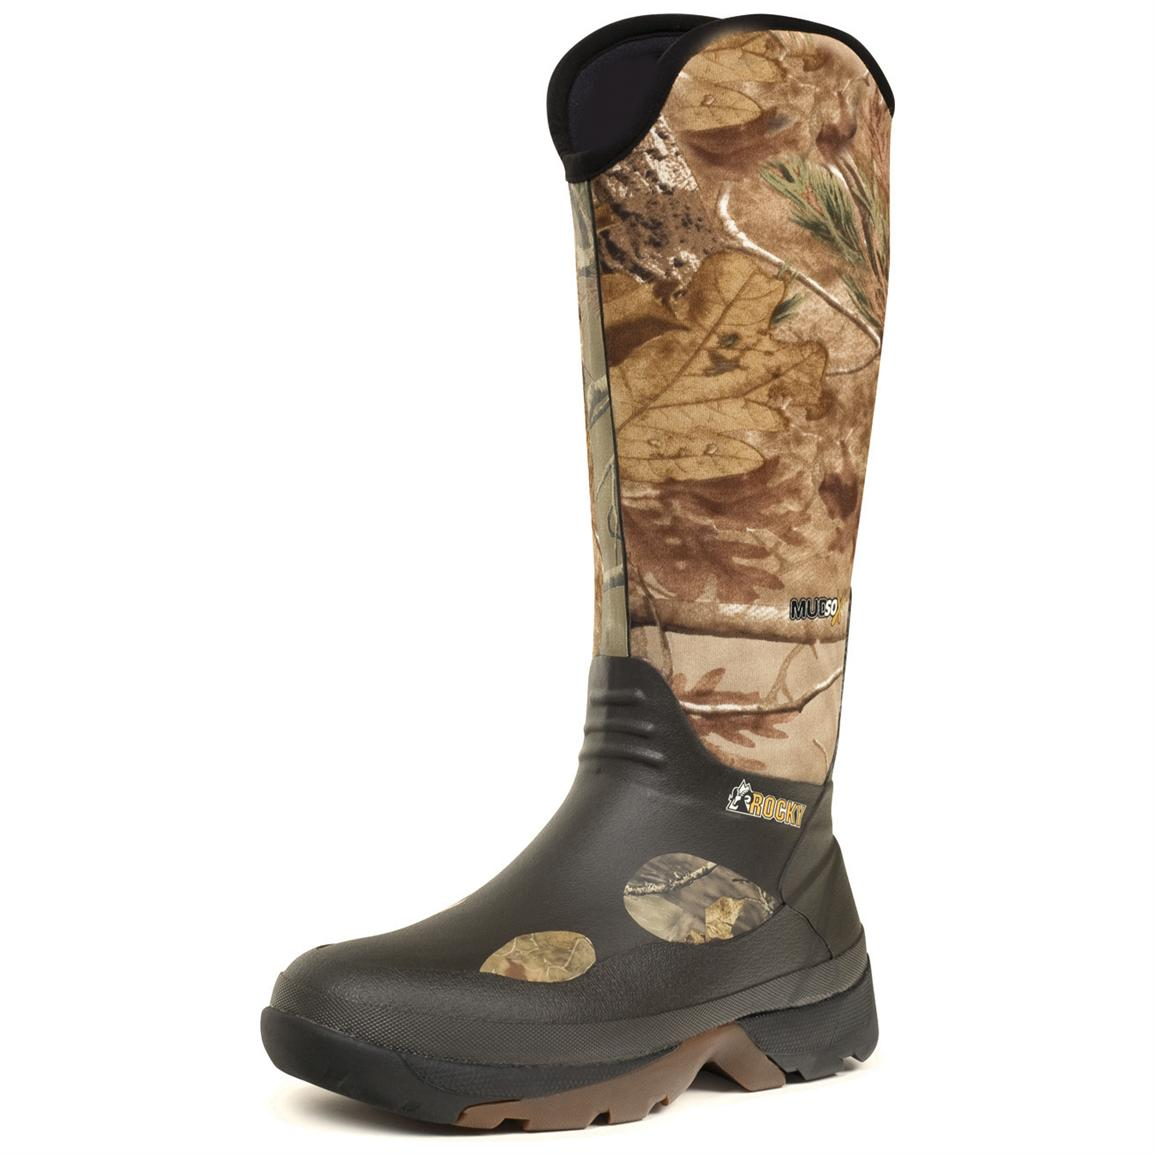 Men's Rocky® 16 inch MudSox Rubber Boots, Realtree AP